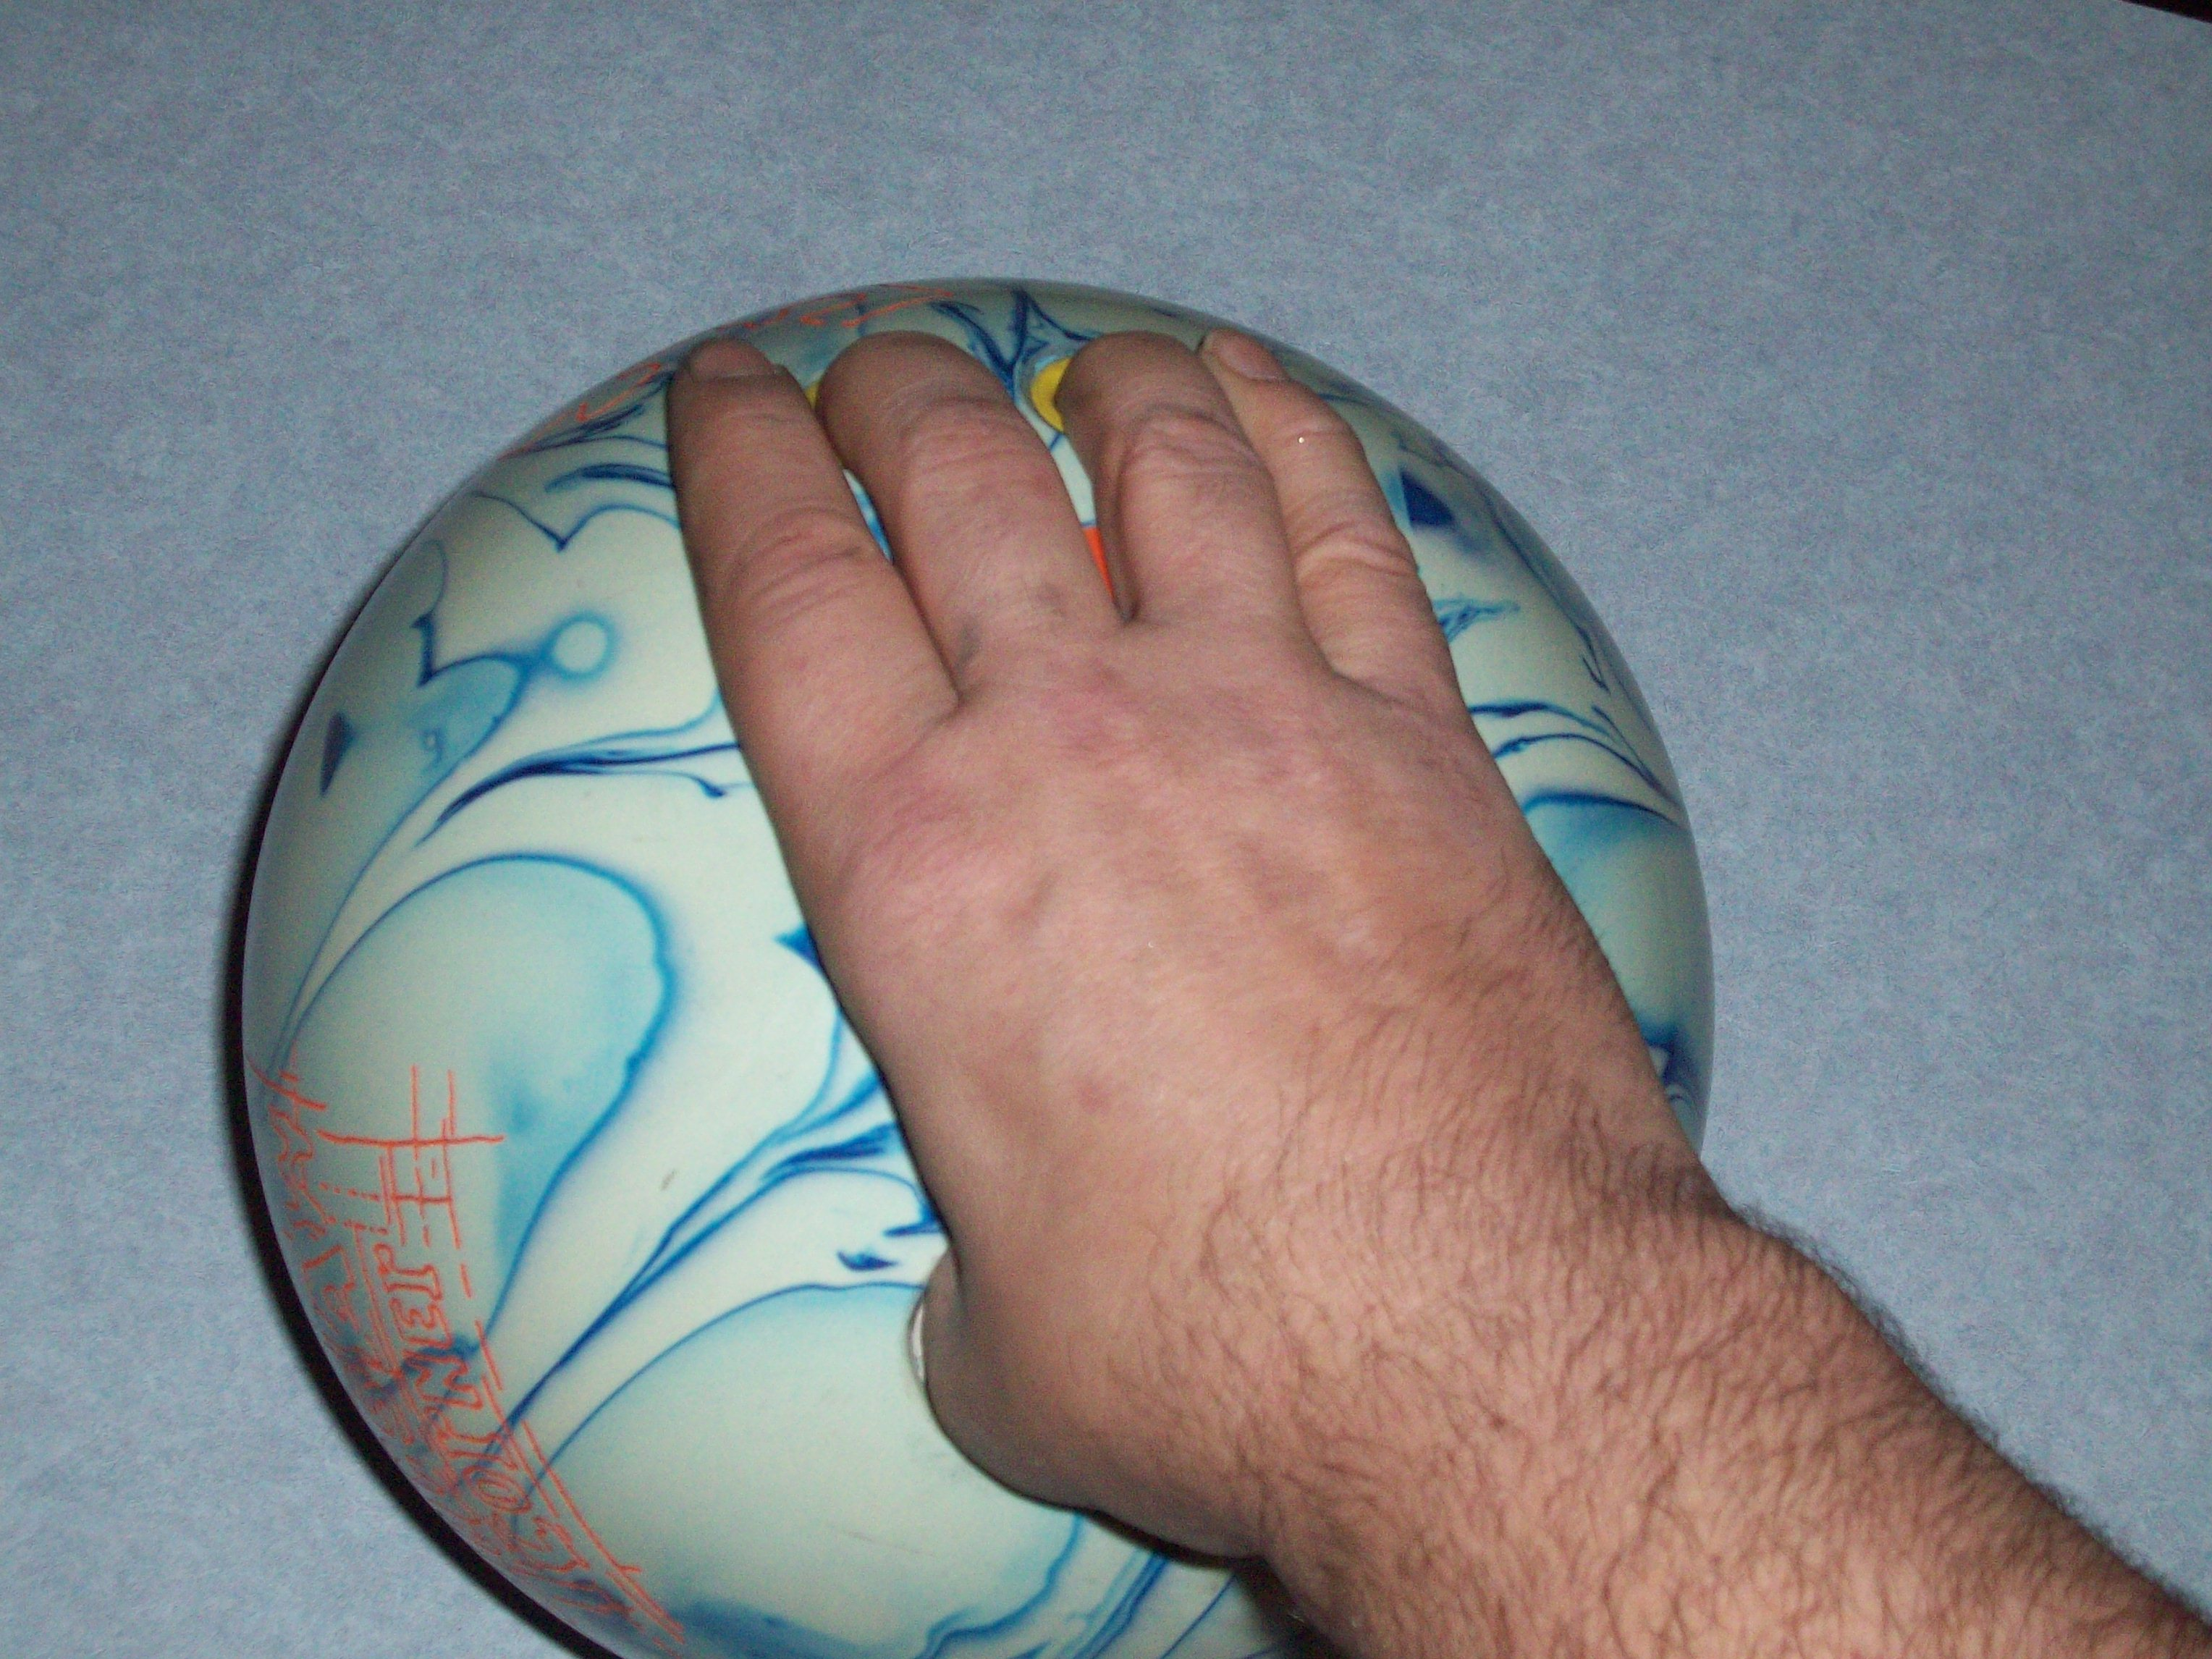 Bowling Finger Positions, All Fingers Tight Finger Position, Bowling Finger Positions Bowling Hand Positions, Bowling Wrist Hand Positions,  Finger Position Used In Bowling, Bowling Wrist Positions, bowling, ball, hand, finger, wrist, positions